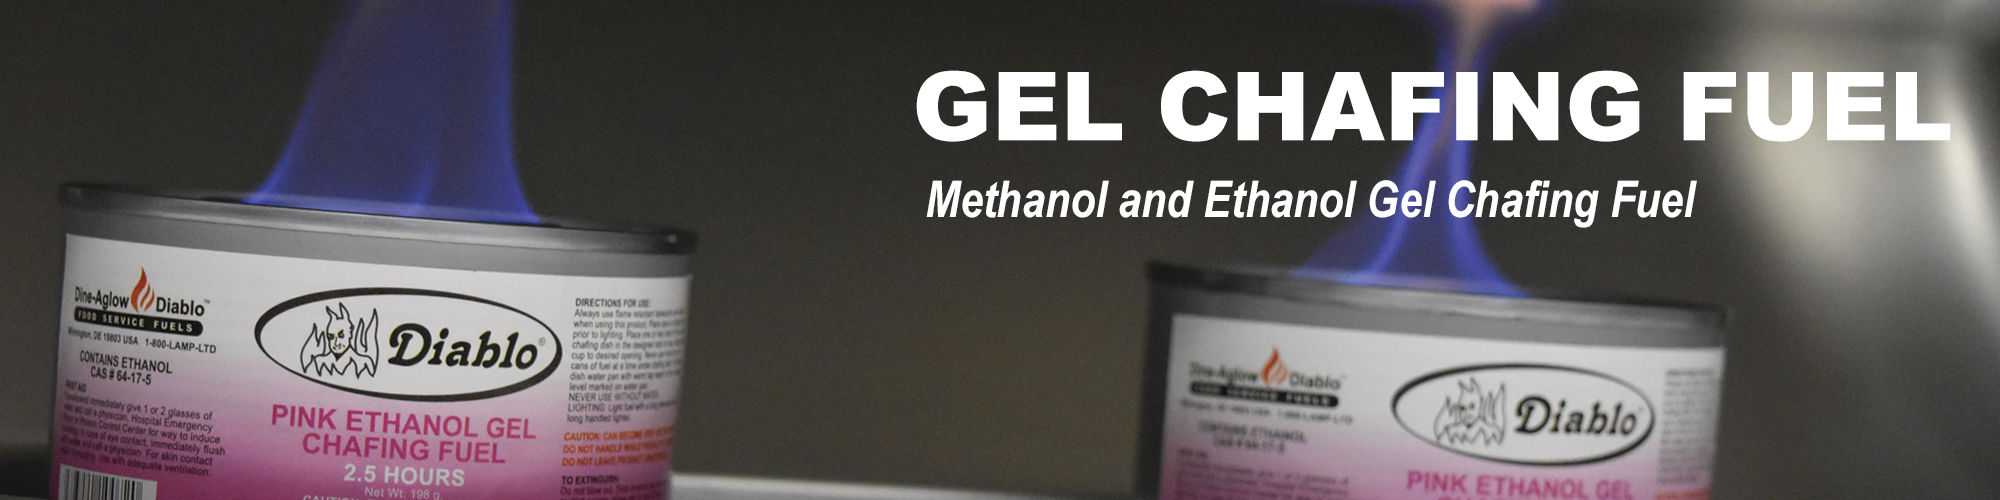 Gel Chafing Fuel